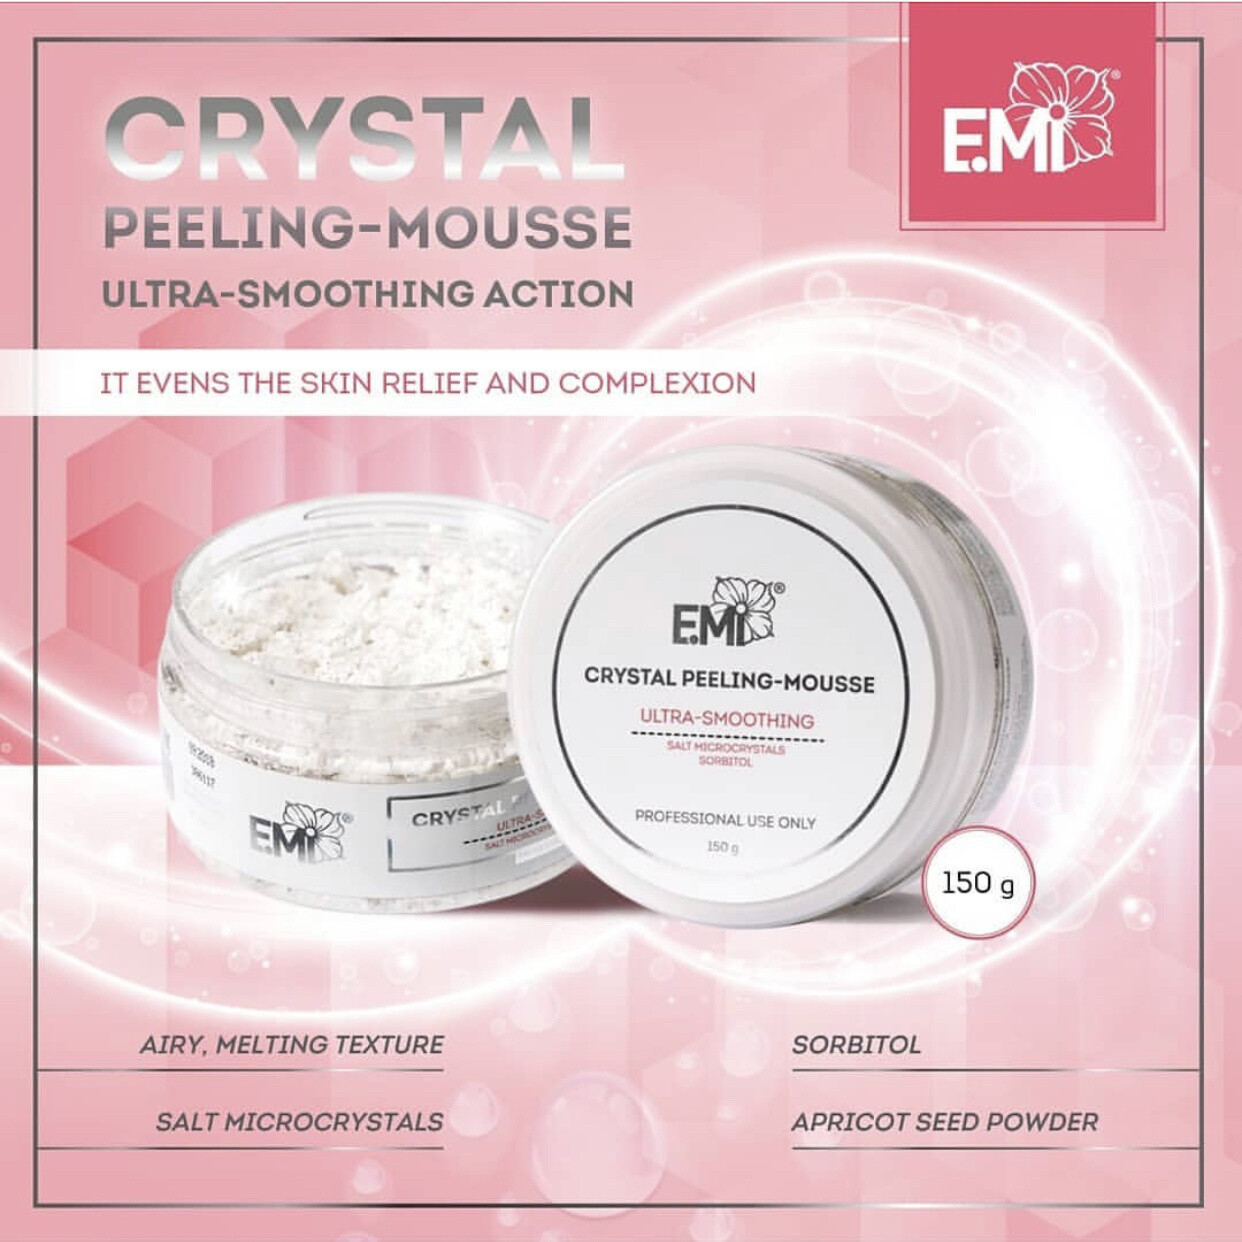 Crystal Peeling-Mousse, 150 g.